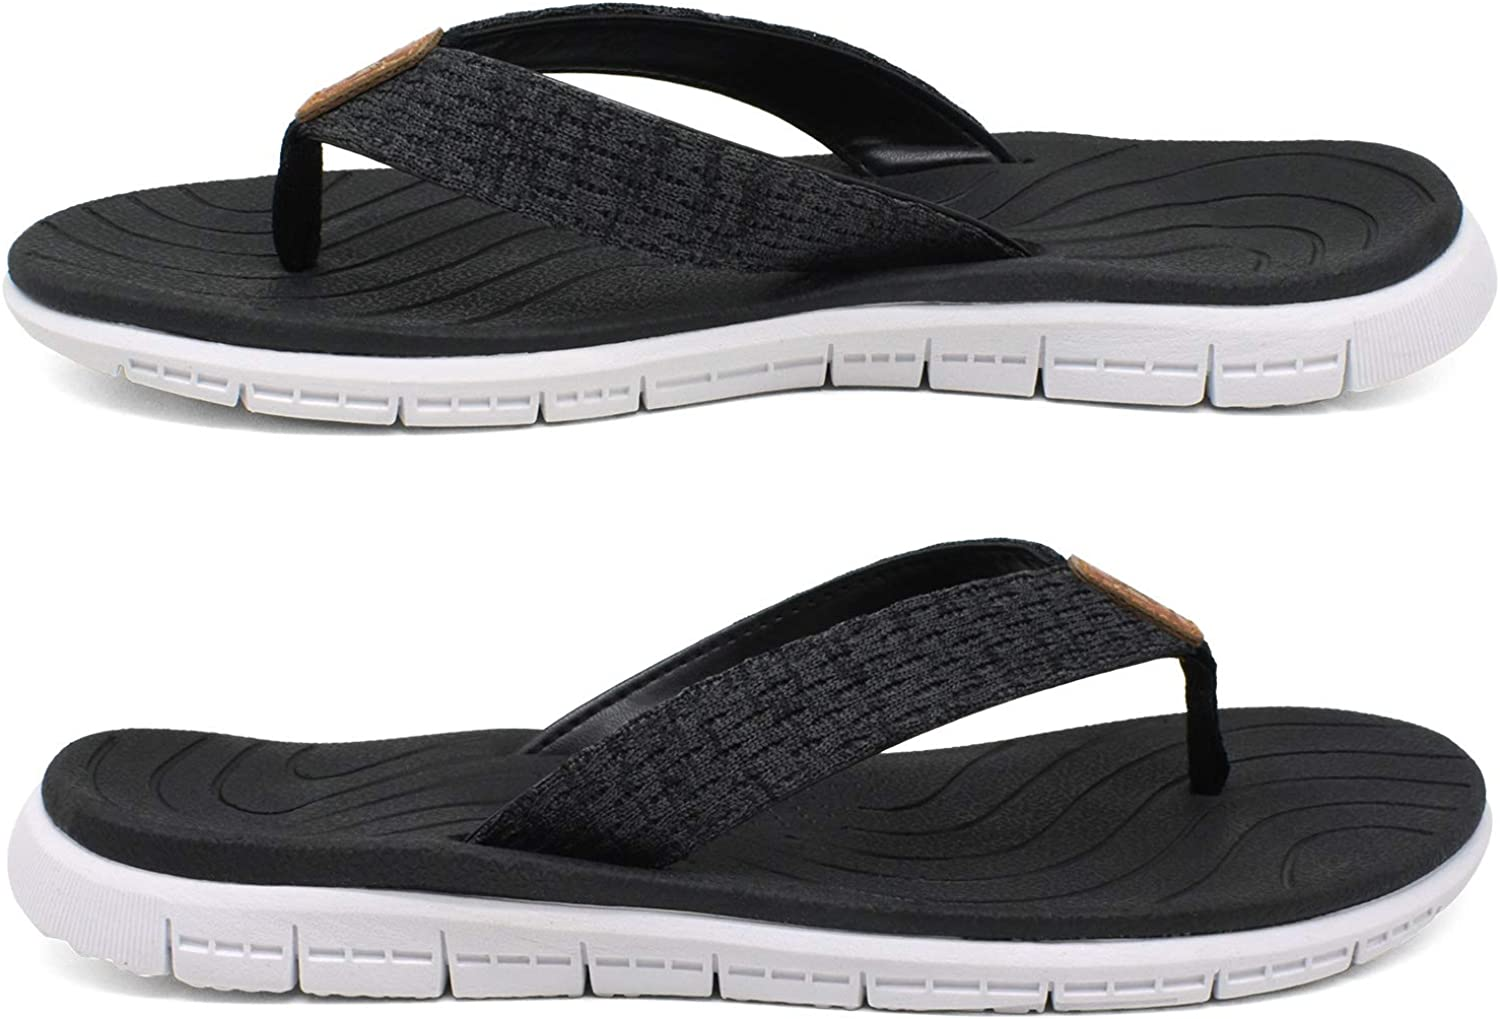 KuaiLu Flip Flops for Women Leather Arch Support Ladies Summer Holiday Beach Sandals Non Slip Soft EVA Sole Pool Shower Thongs